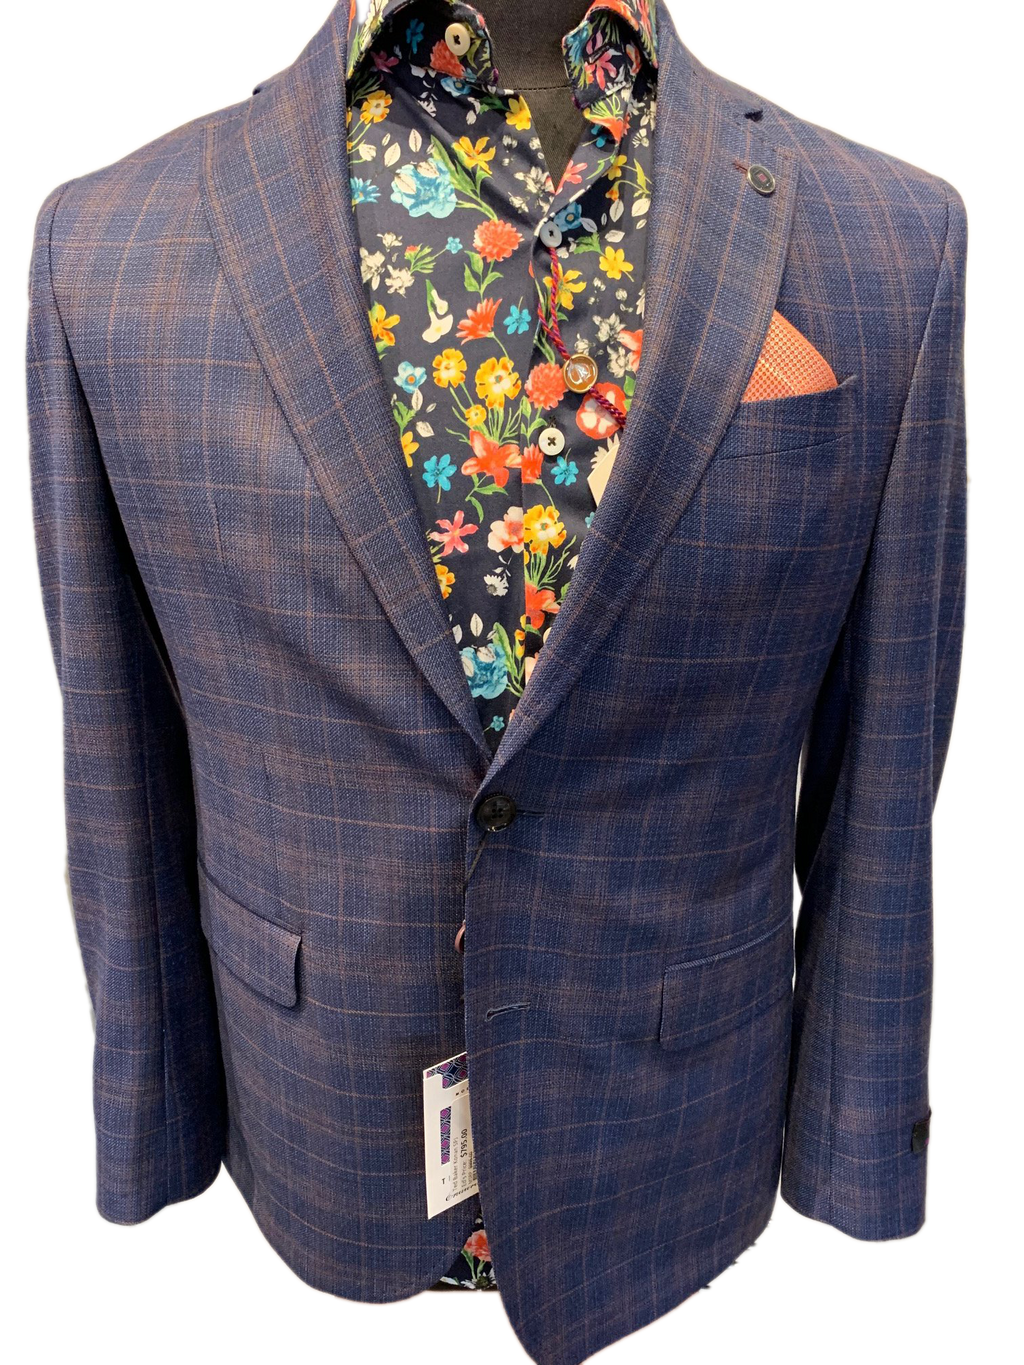 Ted Baker Men's Blazer - Blue/Orange Windowpane Stunning Sports Jacket BNWT